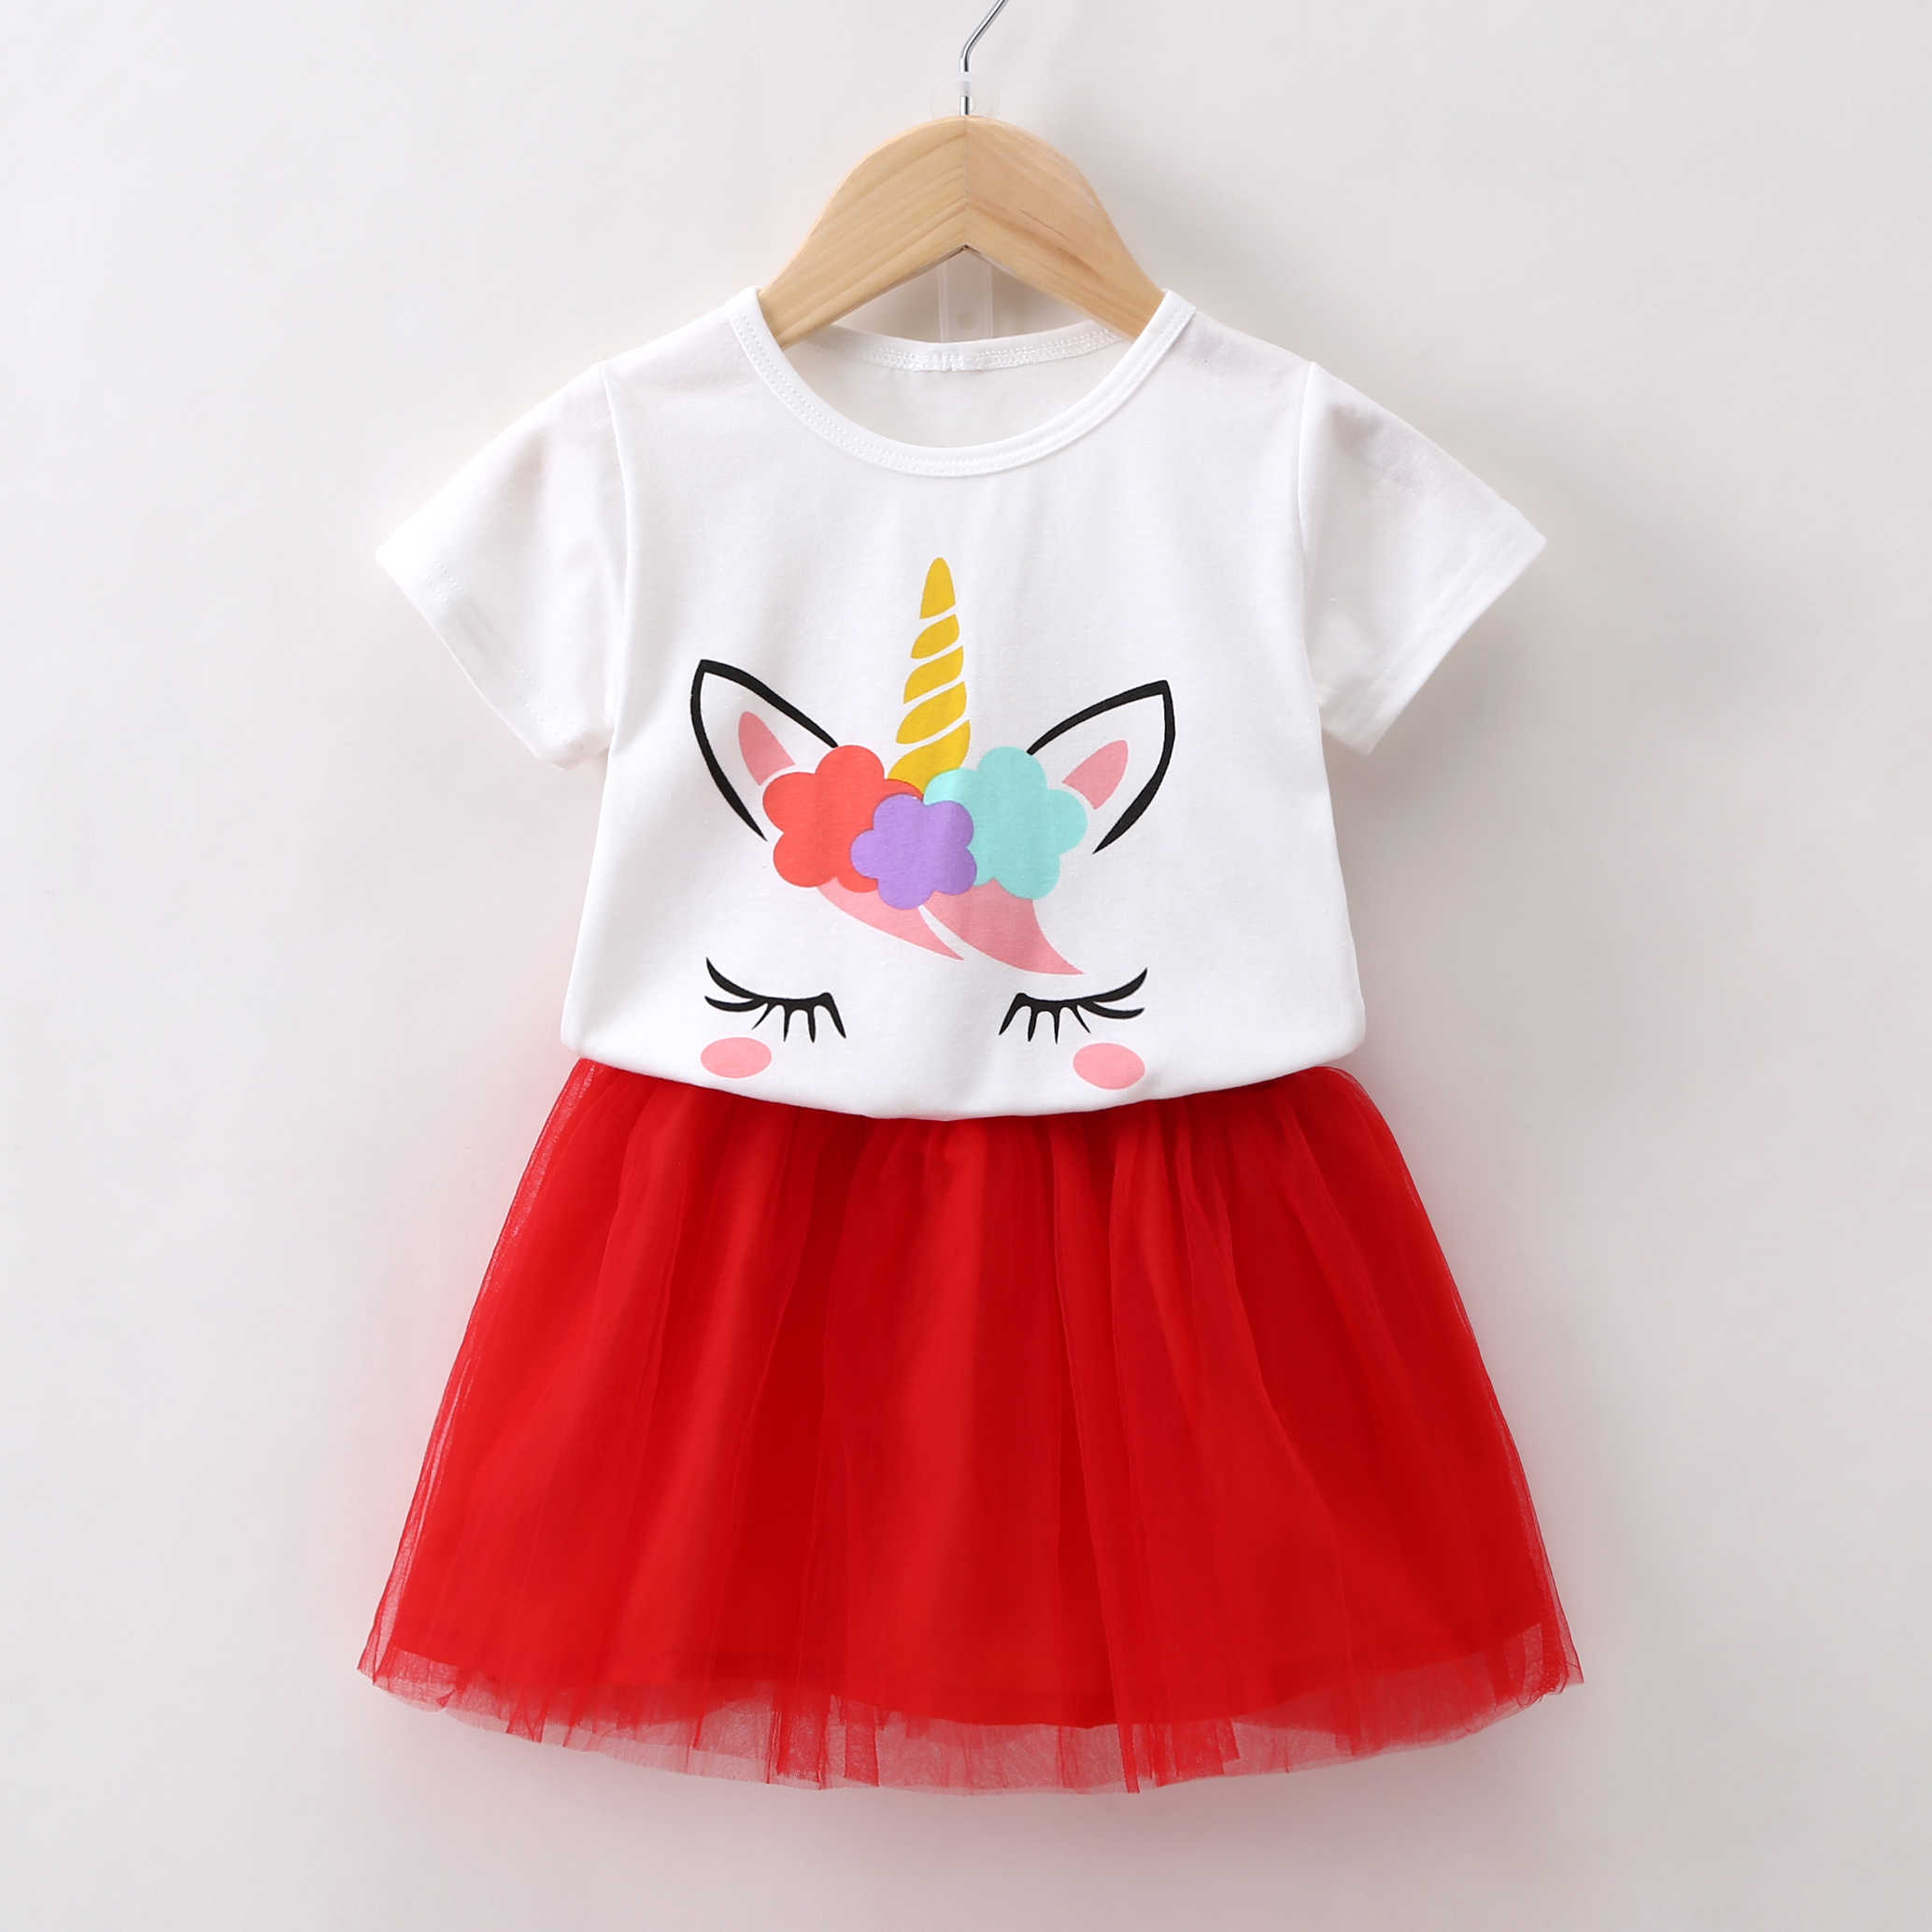 Baby Girl Cartoon Unicorn T-Shirt 1 2 3 4 5 6 Year Girls Summer Top Cotton Tees Kid Short Sleeved White Tshirt Children Clothing